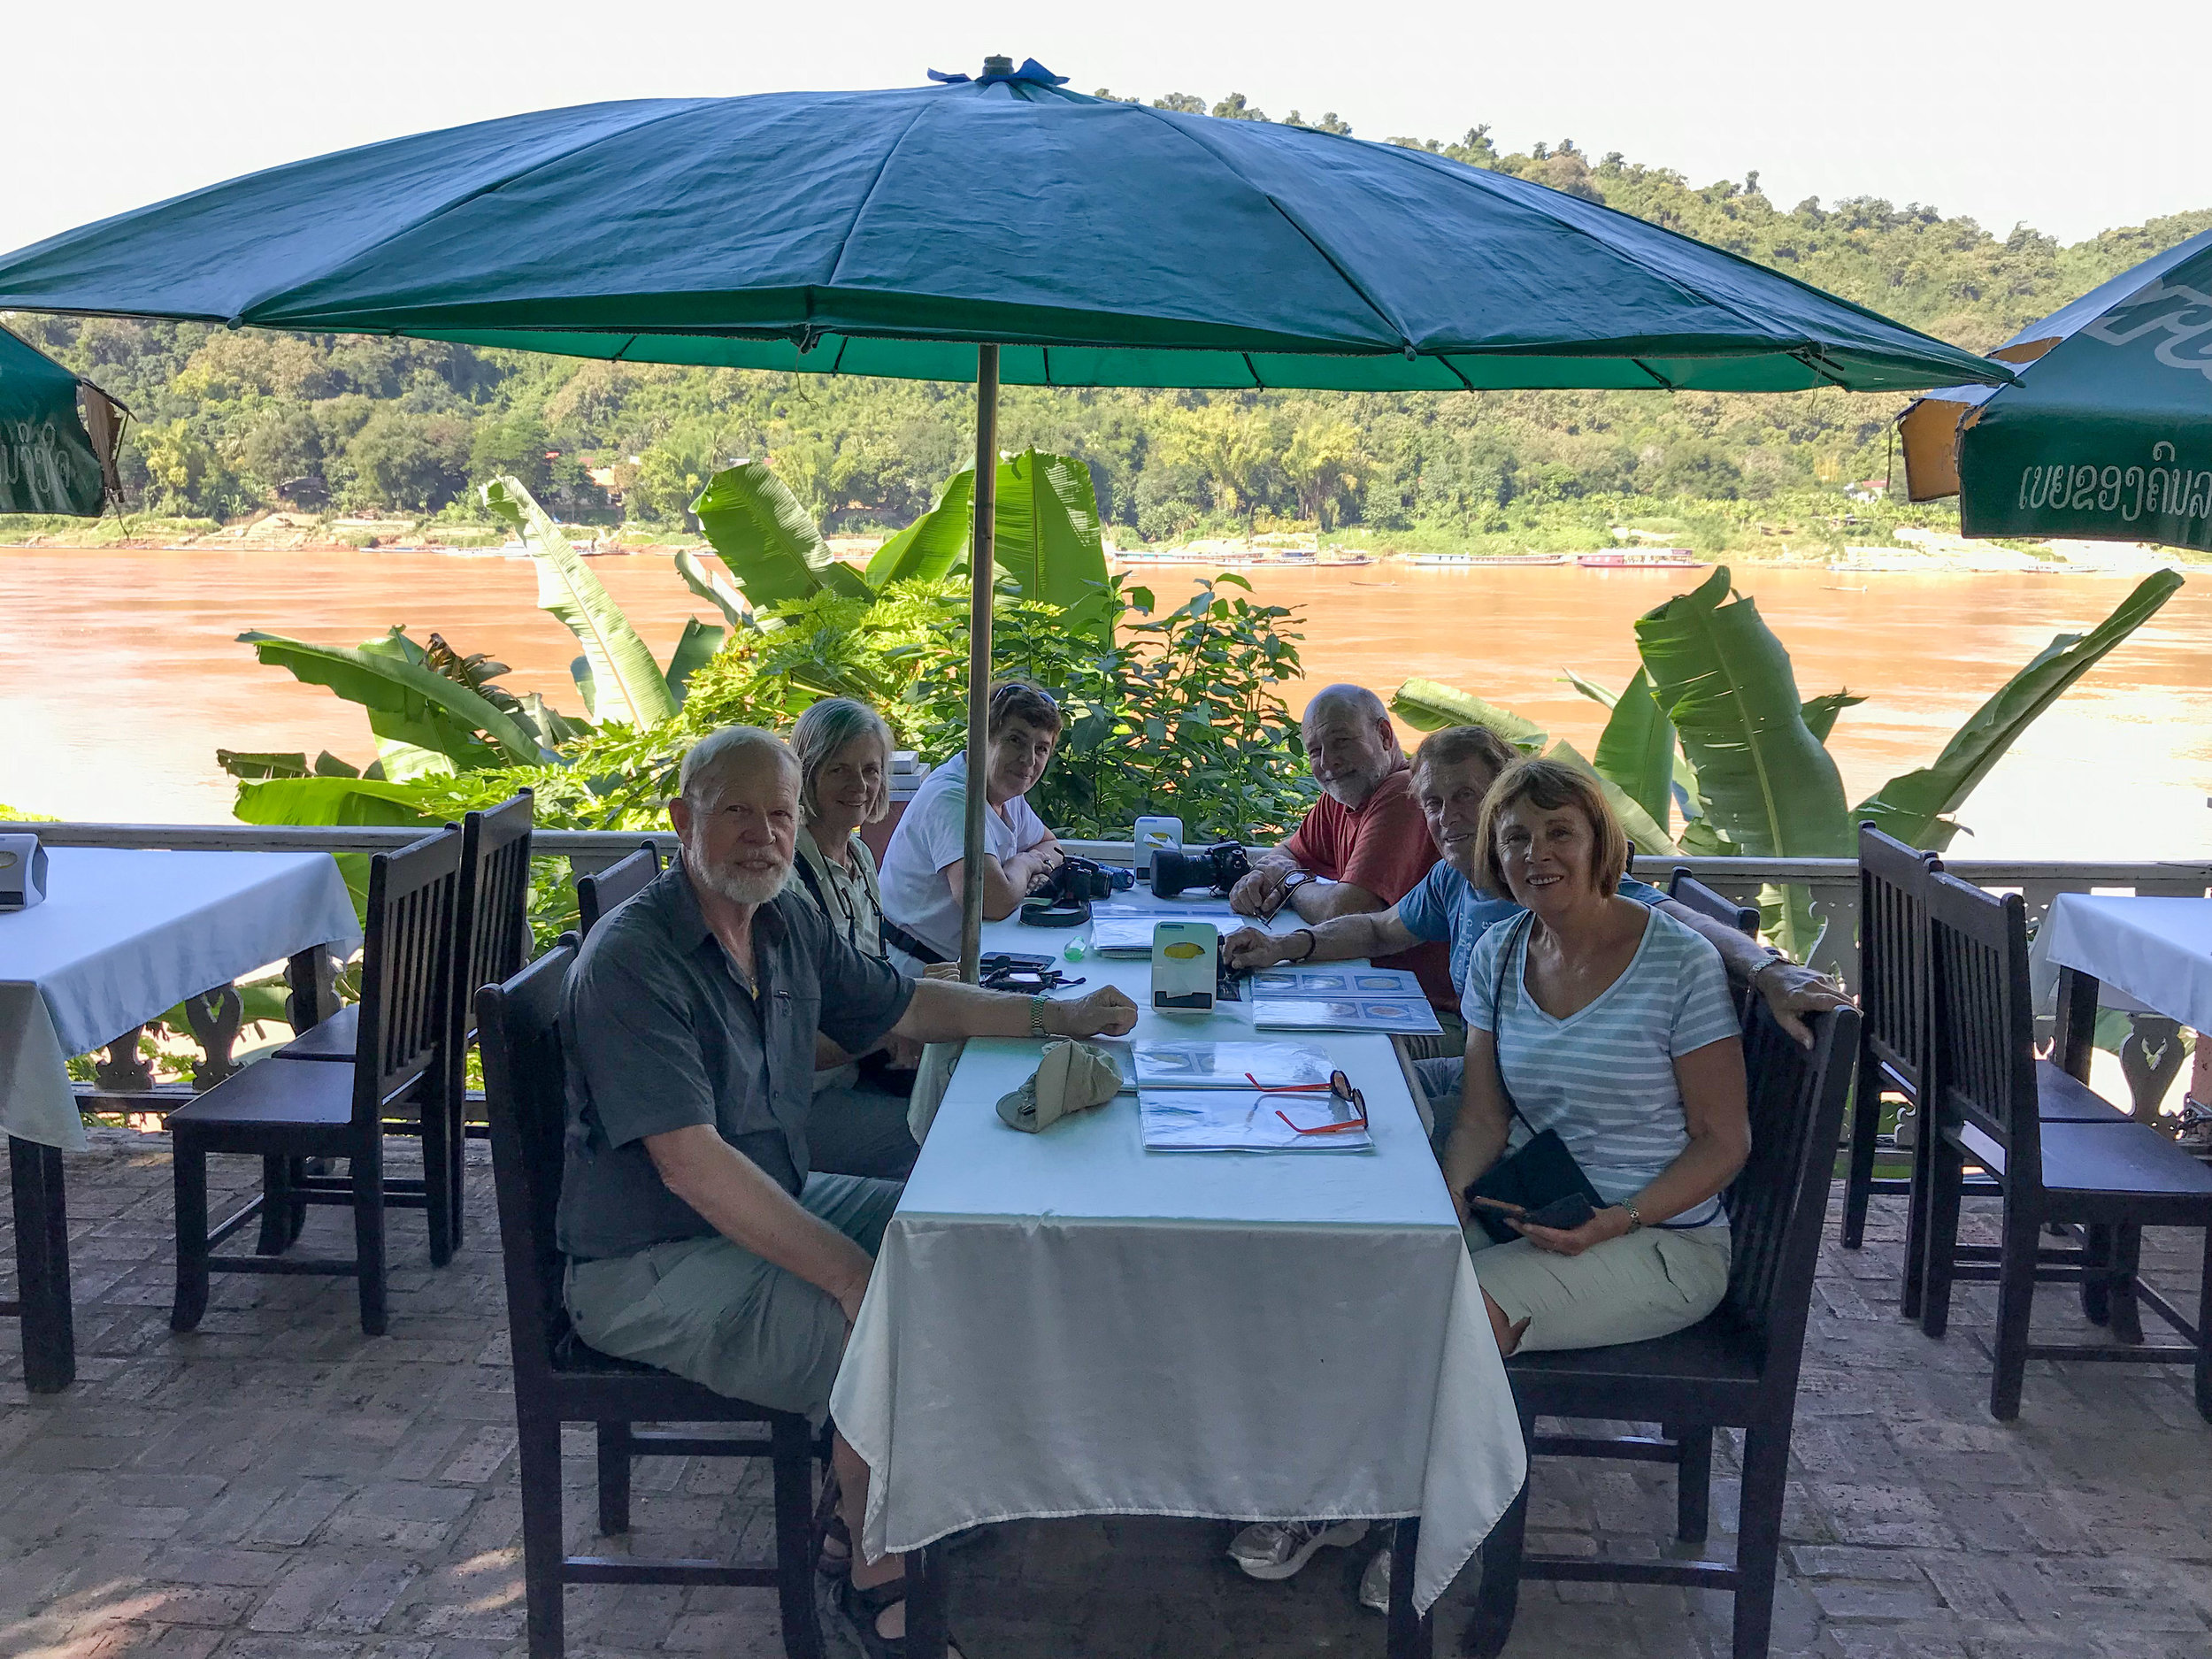 Lunch by Mekong River, Luang Prabang, Laos, 1 Dec 2017.jpg